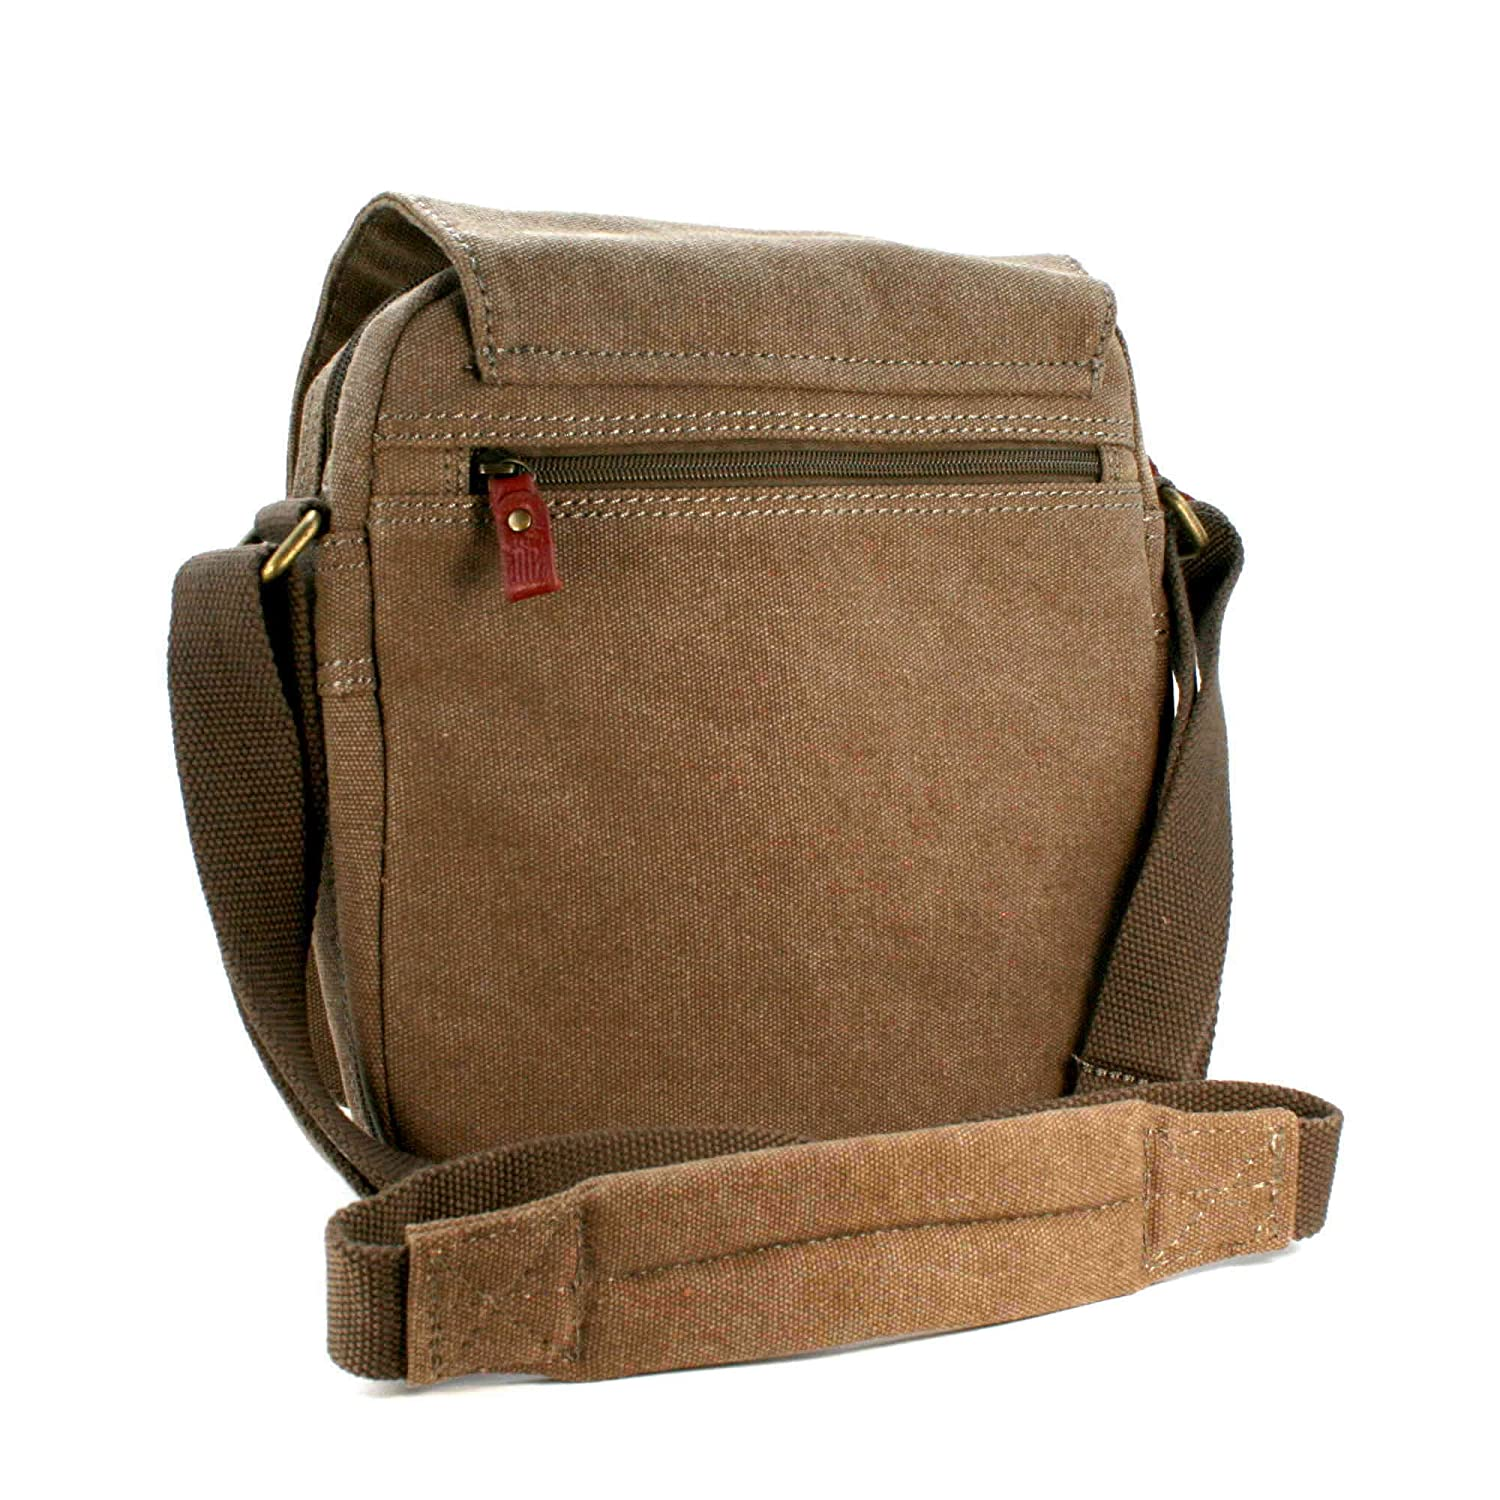 Troop TRP0238 Classic Shoulder Bag: Amazon.co.uk: Shoes & Bags